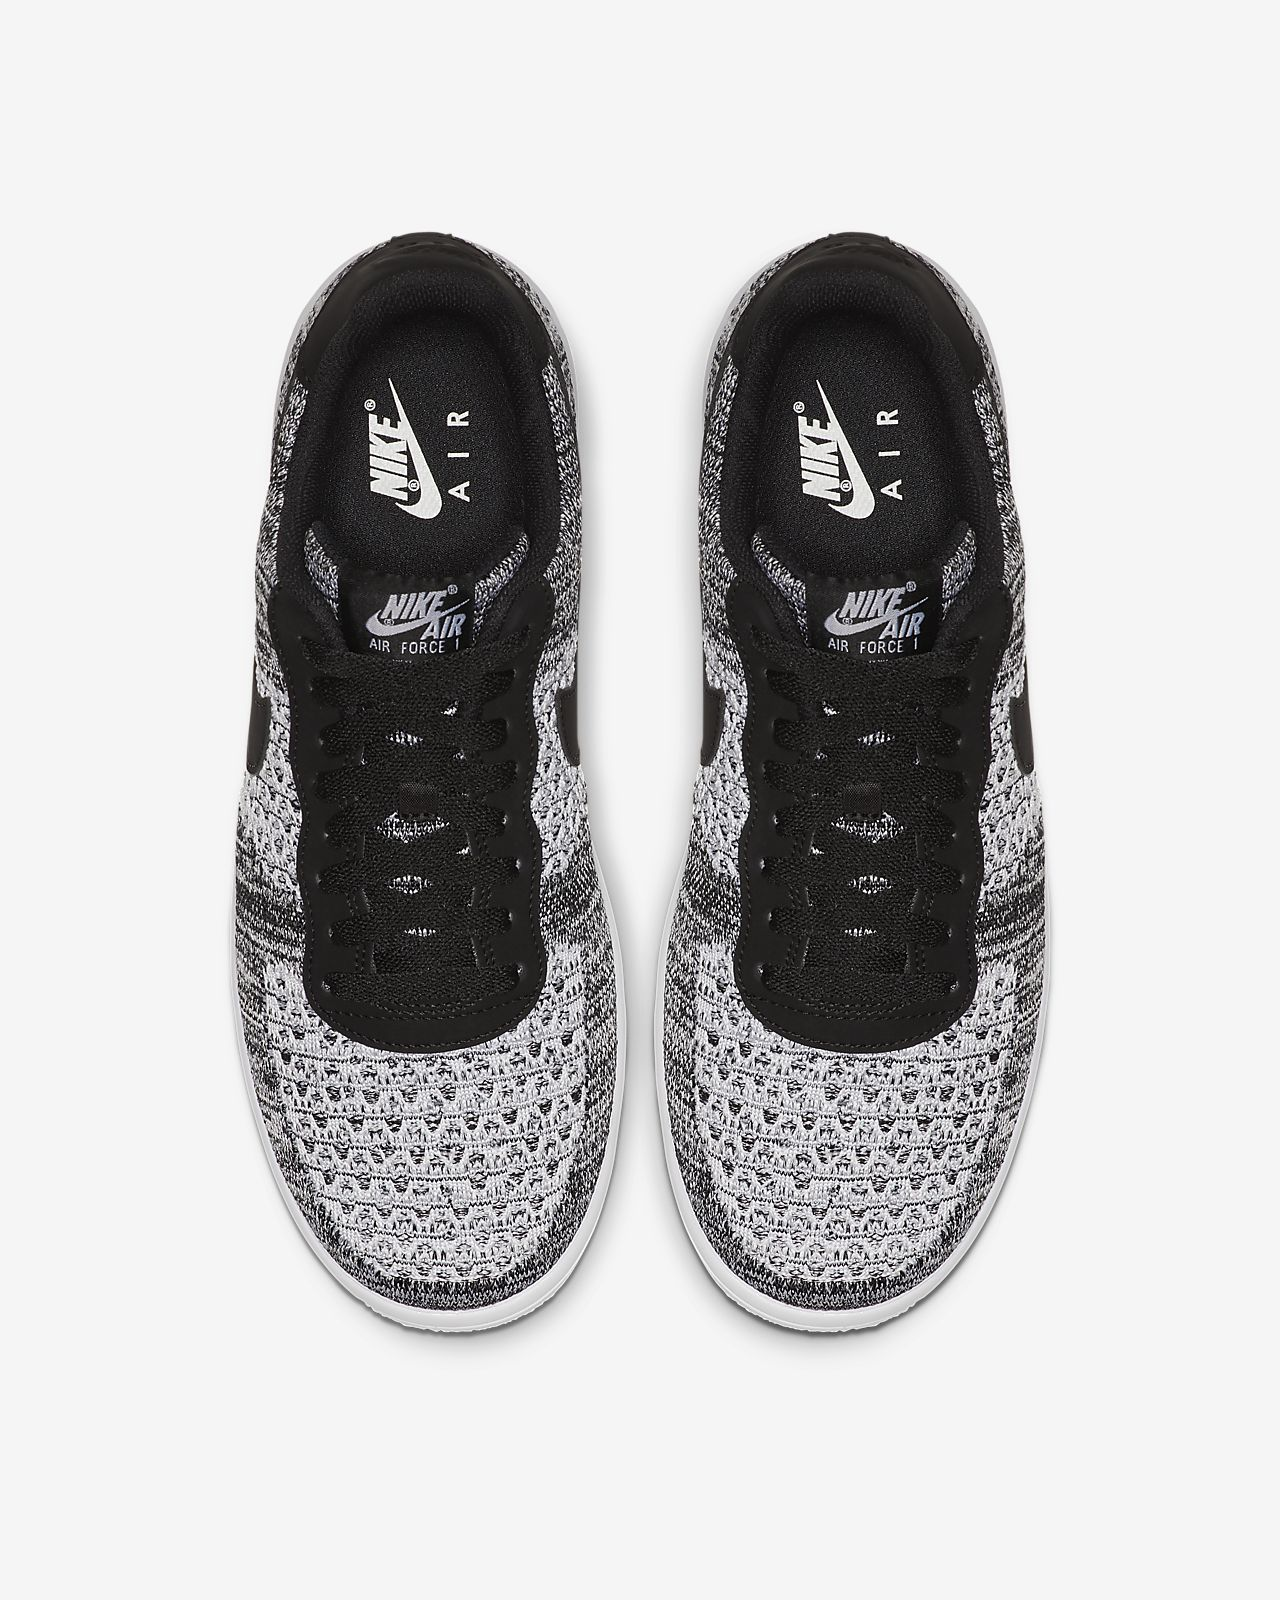 Sapatilhas Nike Air Force 1 Flyknit 2.0